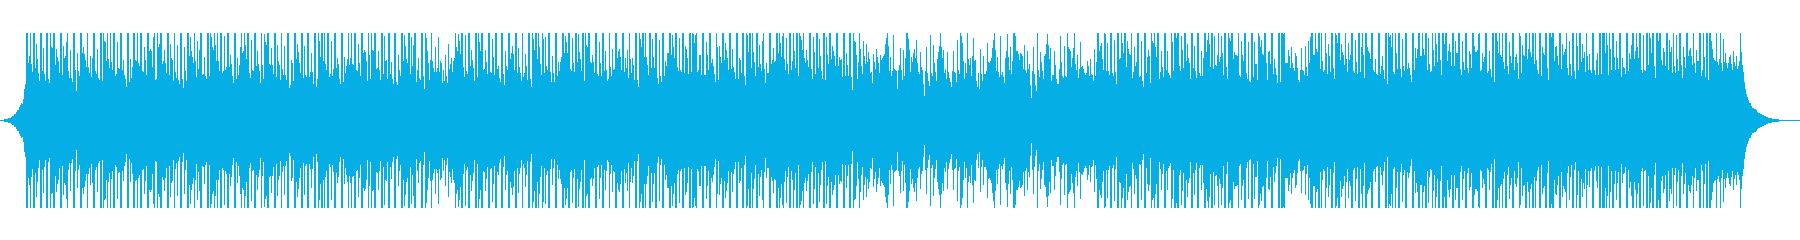 The Presentation's reproduced waveform